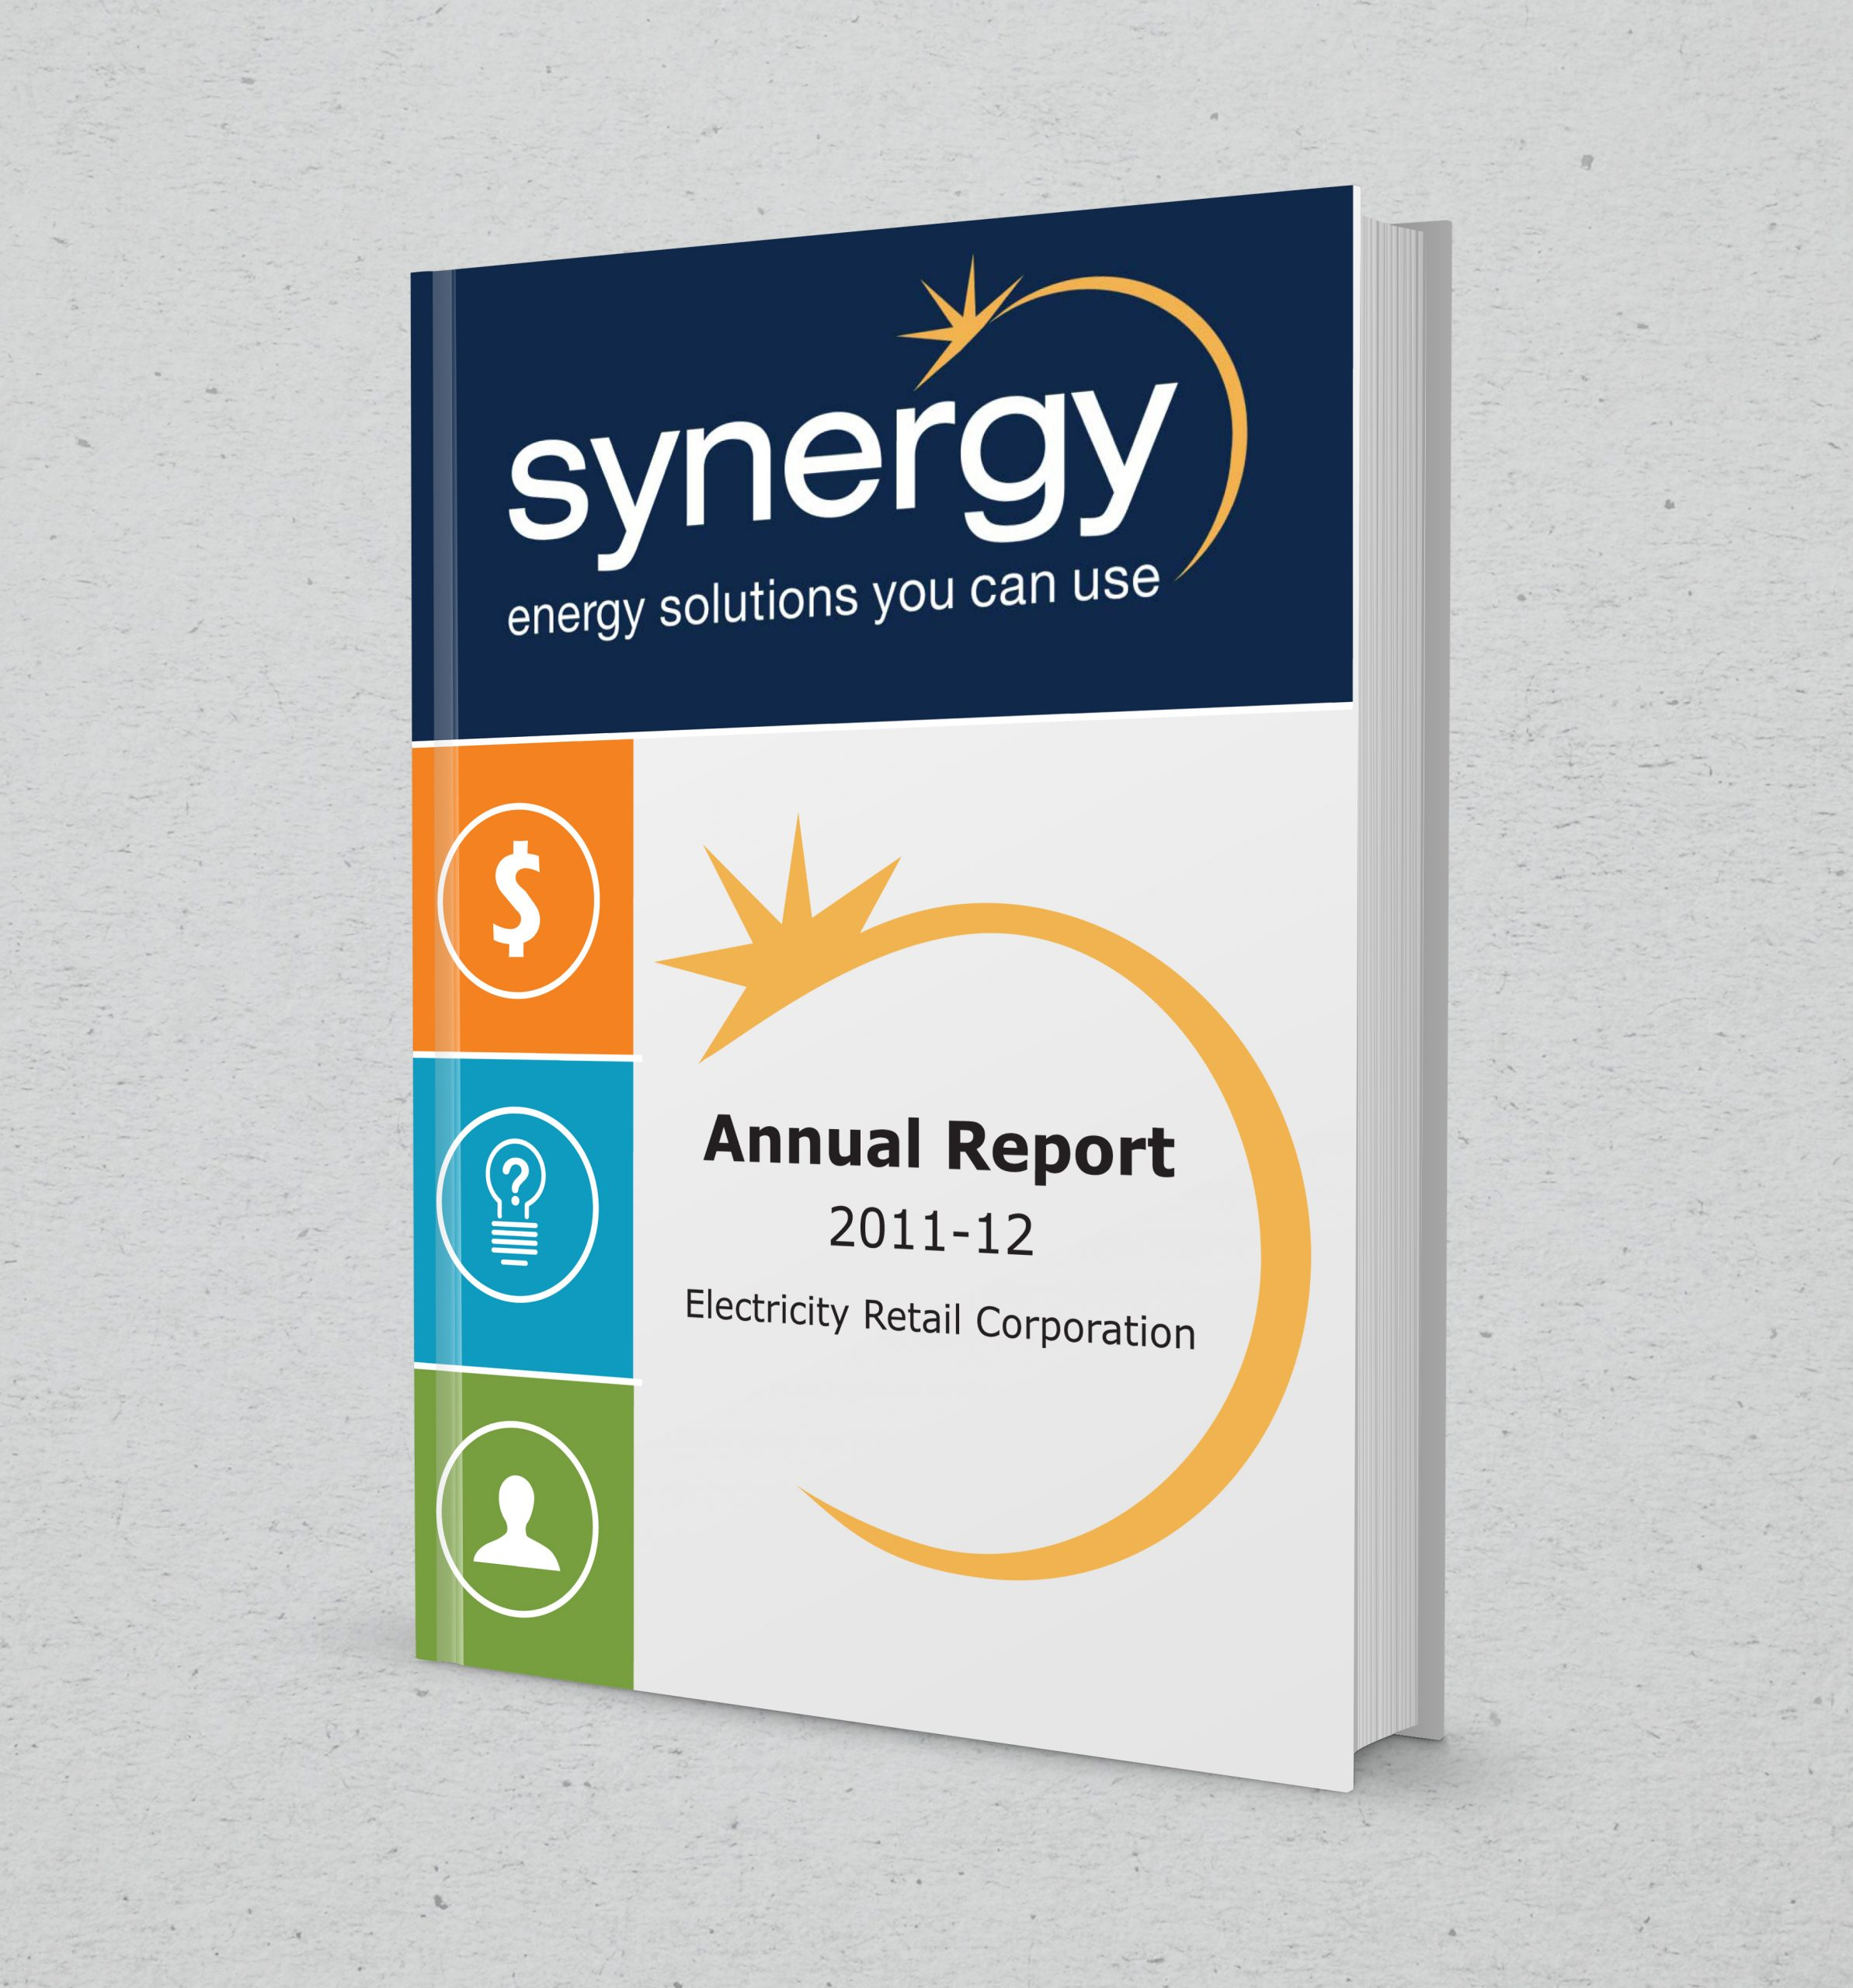 Annual report design a sample project cover by kassandra bowers lakazdi